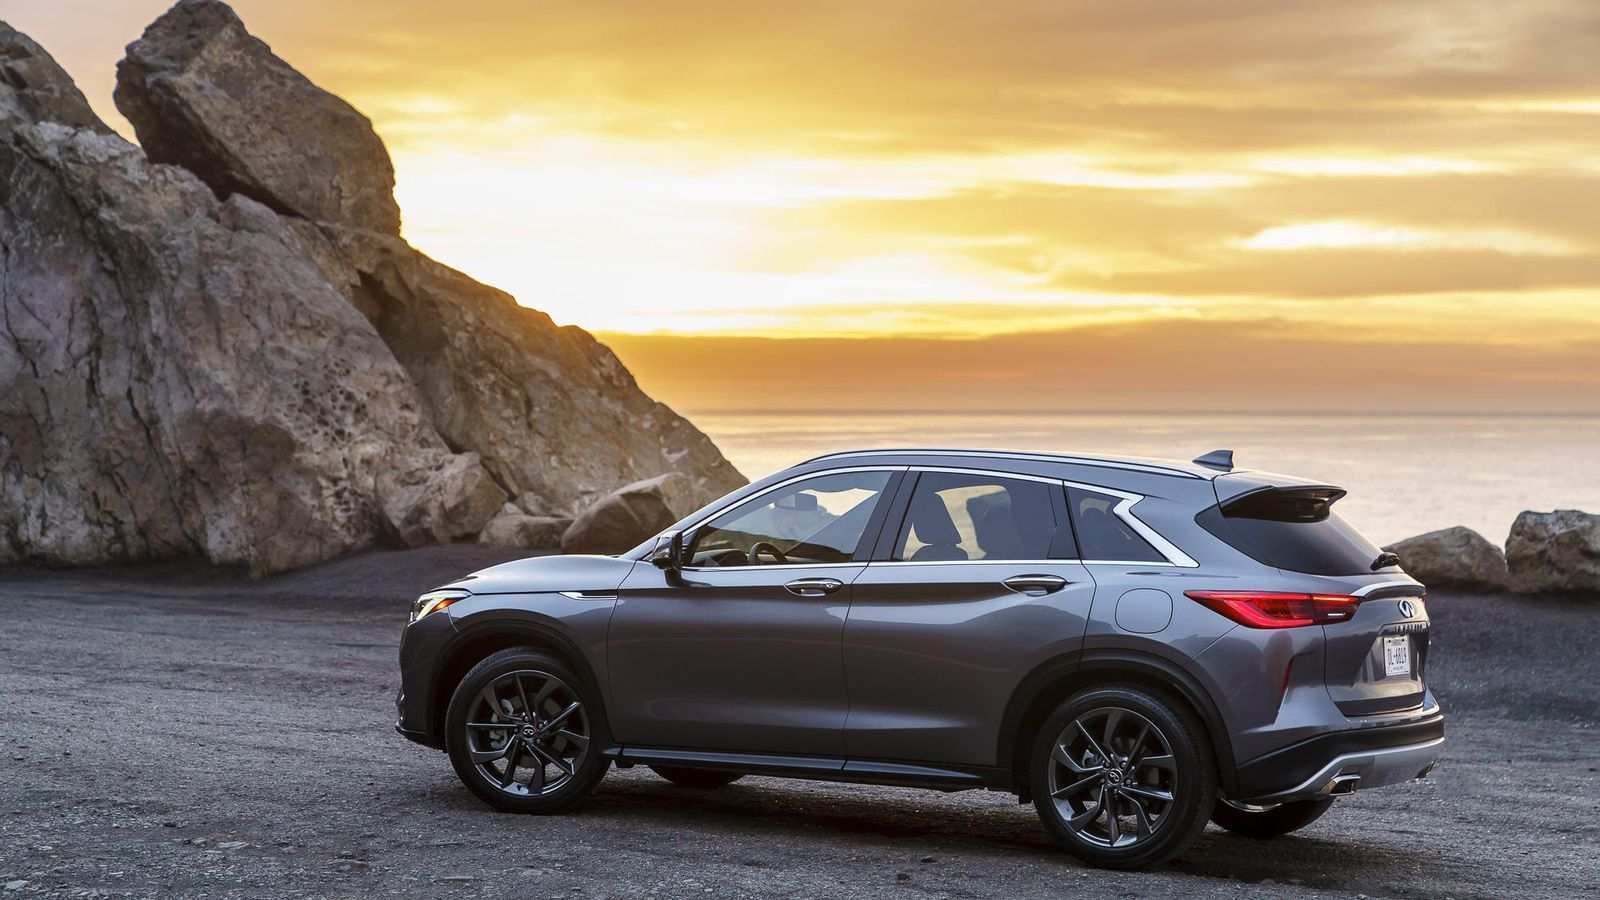 68 All New 2020 Infiniti QX50 Reviews